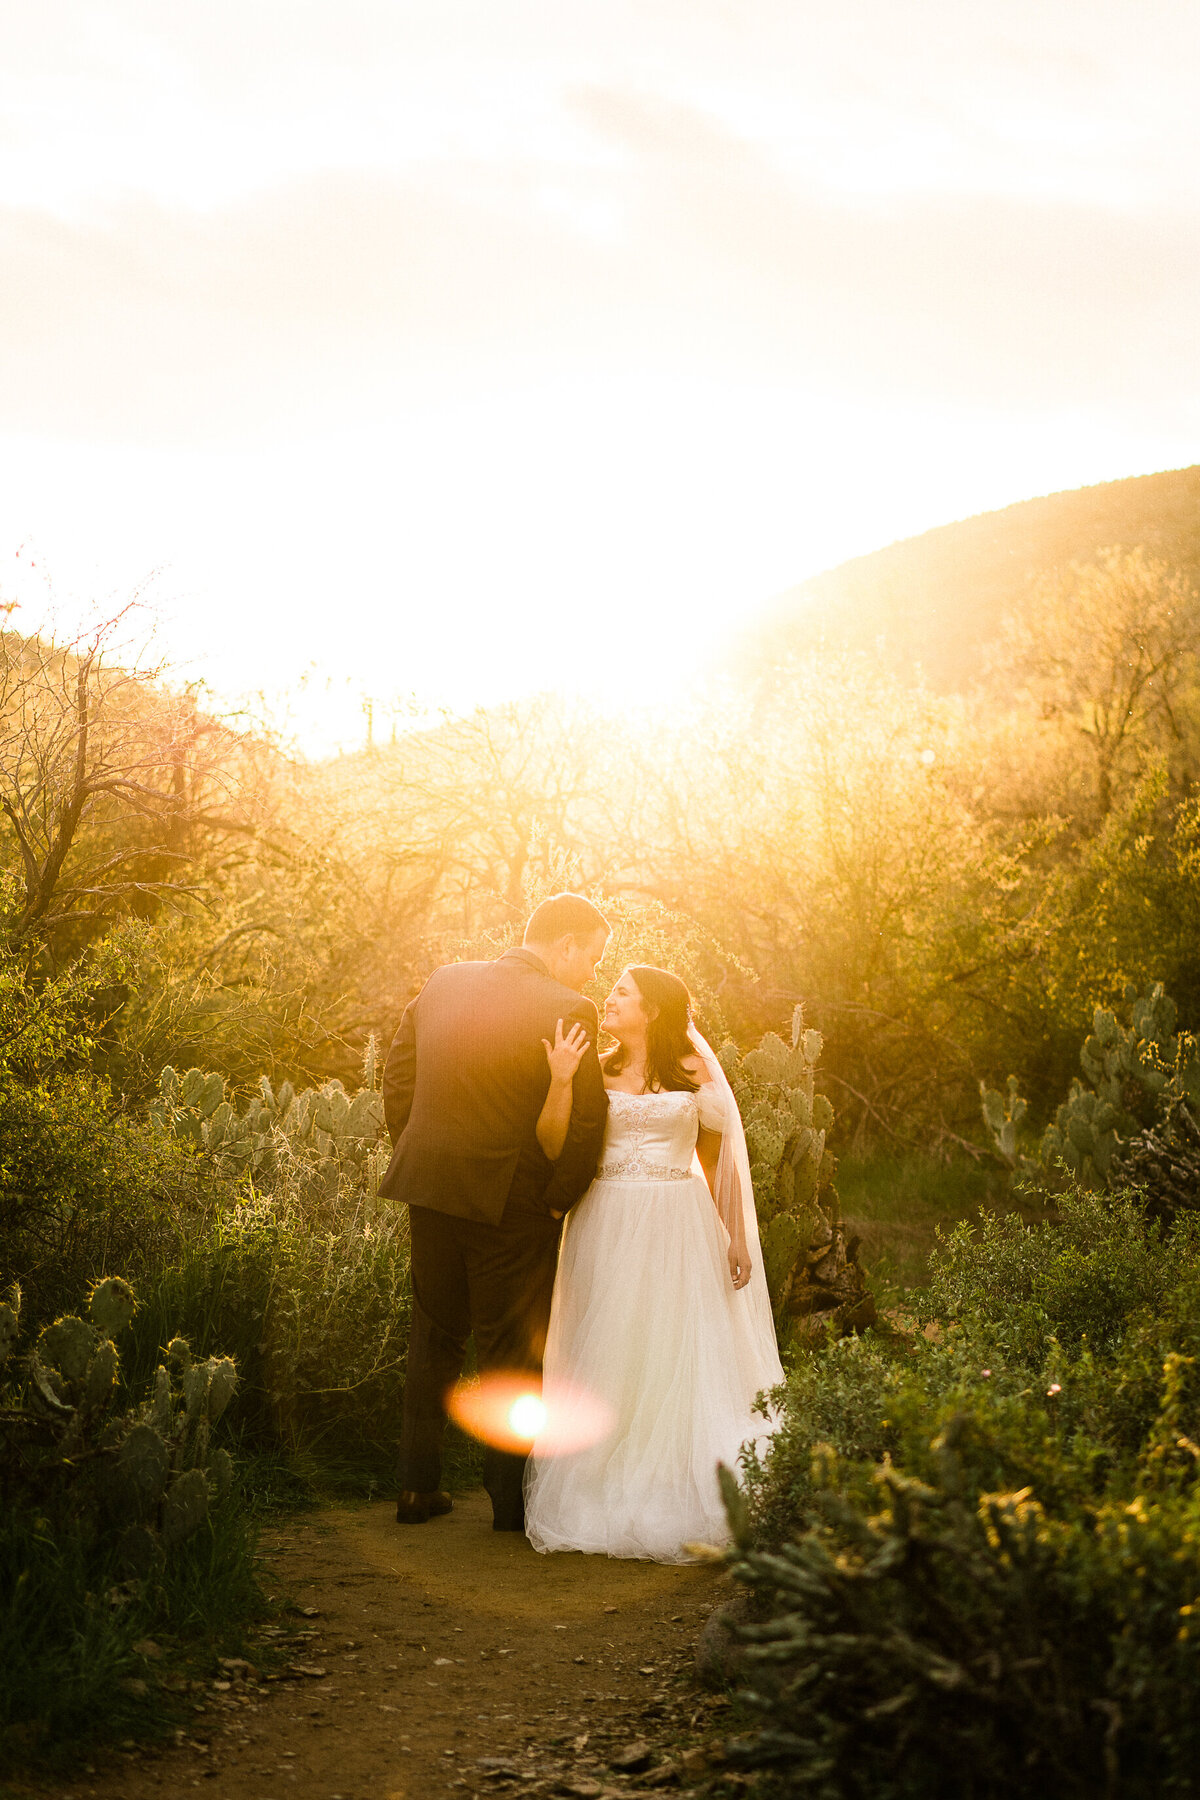 Desert Elopement Bride And Groom Portraits In Arizona - Atlas Rose Photography AZ01